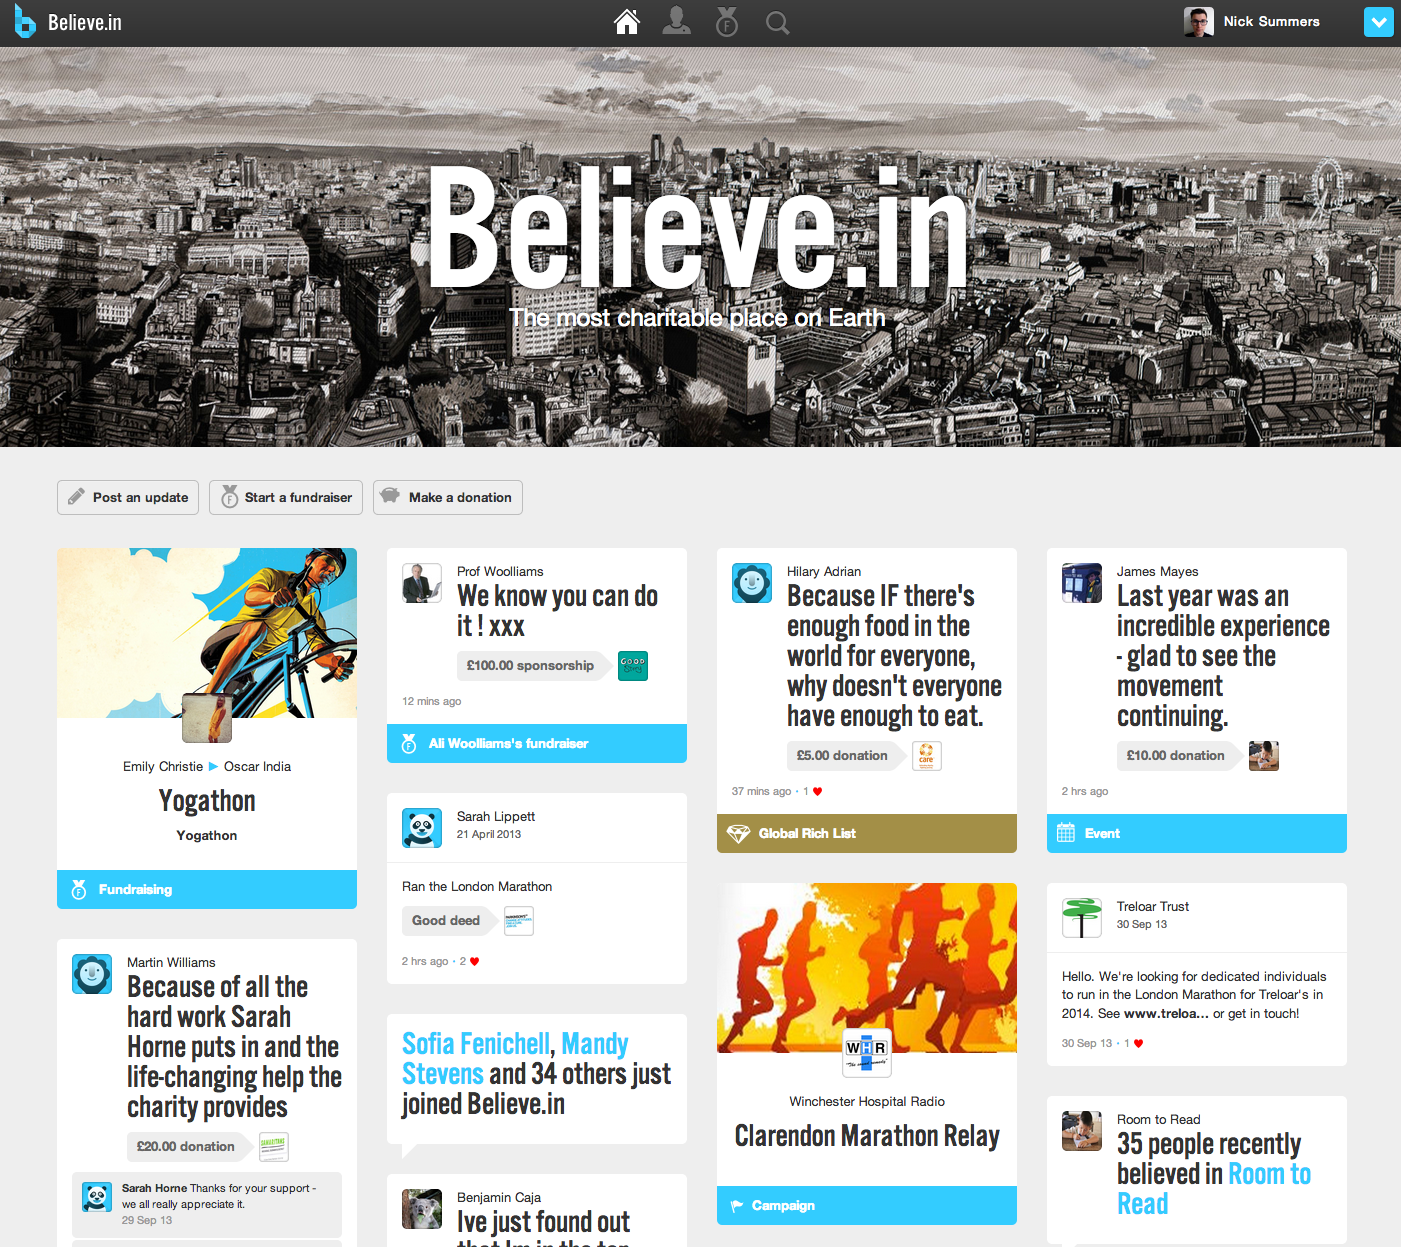 Screen Shot 2013 10 01 at 12.05.07 Believe.in redesigns its beautiful, social fundraising platform with a new tile layout